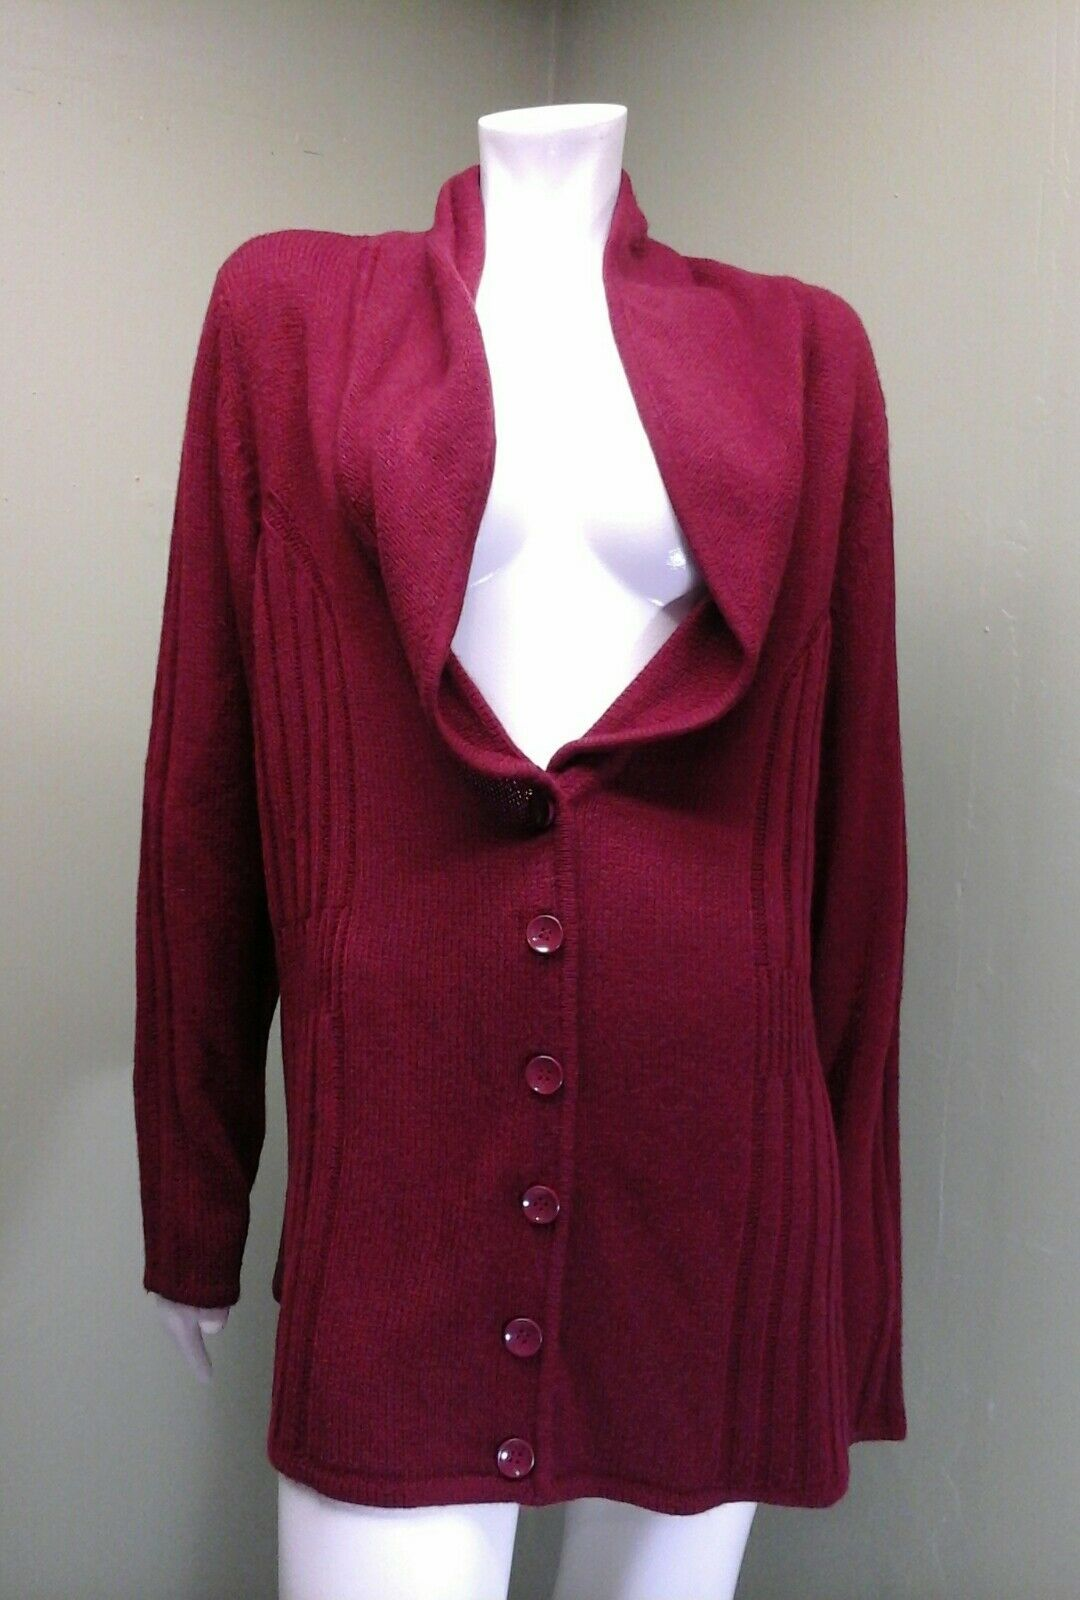 Reference Point NY Women's Maroon Cardigan Sweater Size 2X